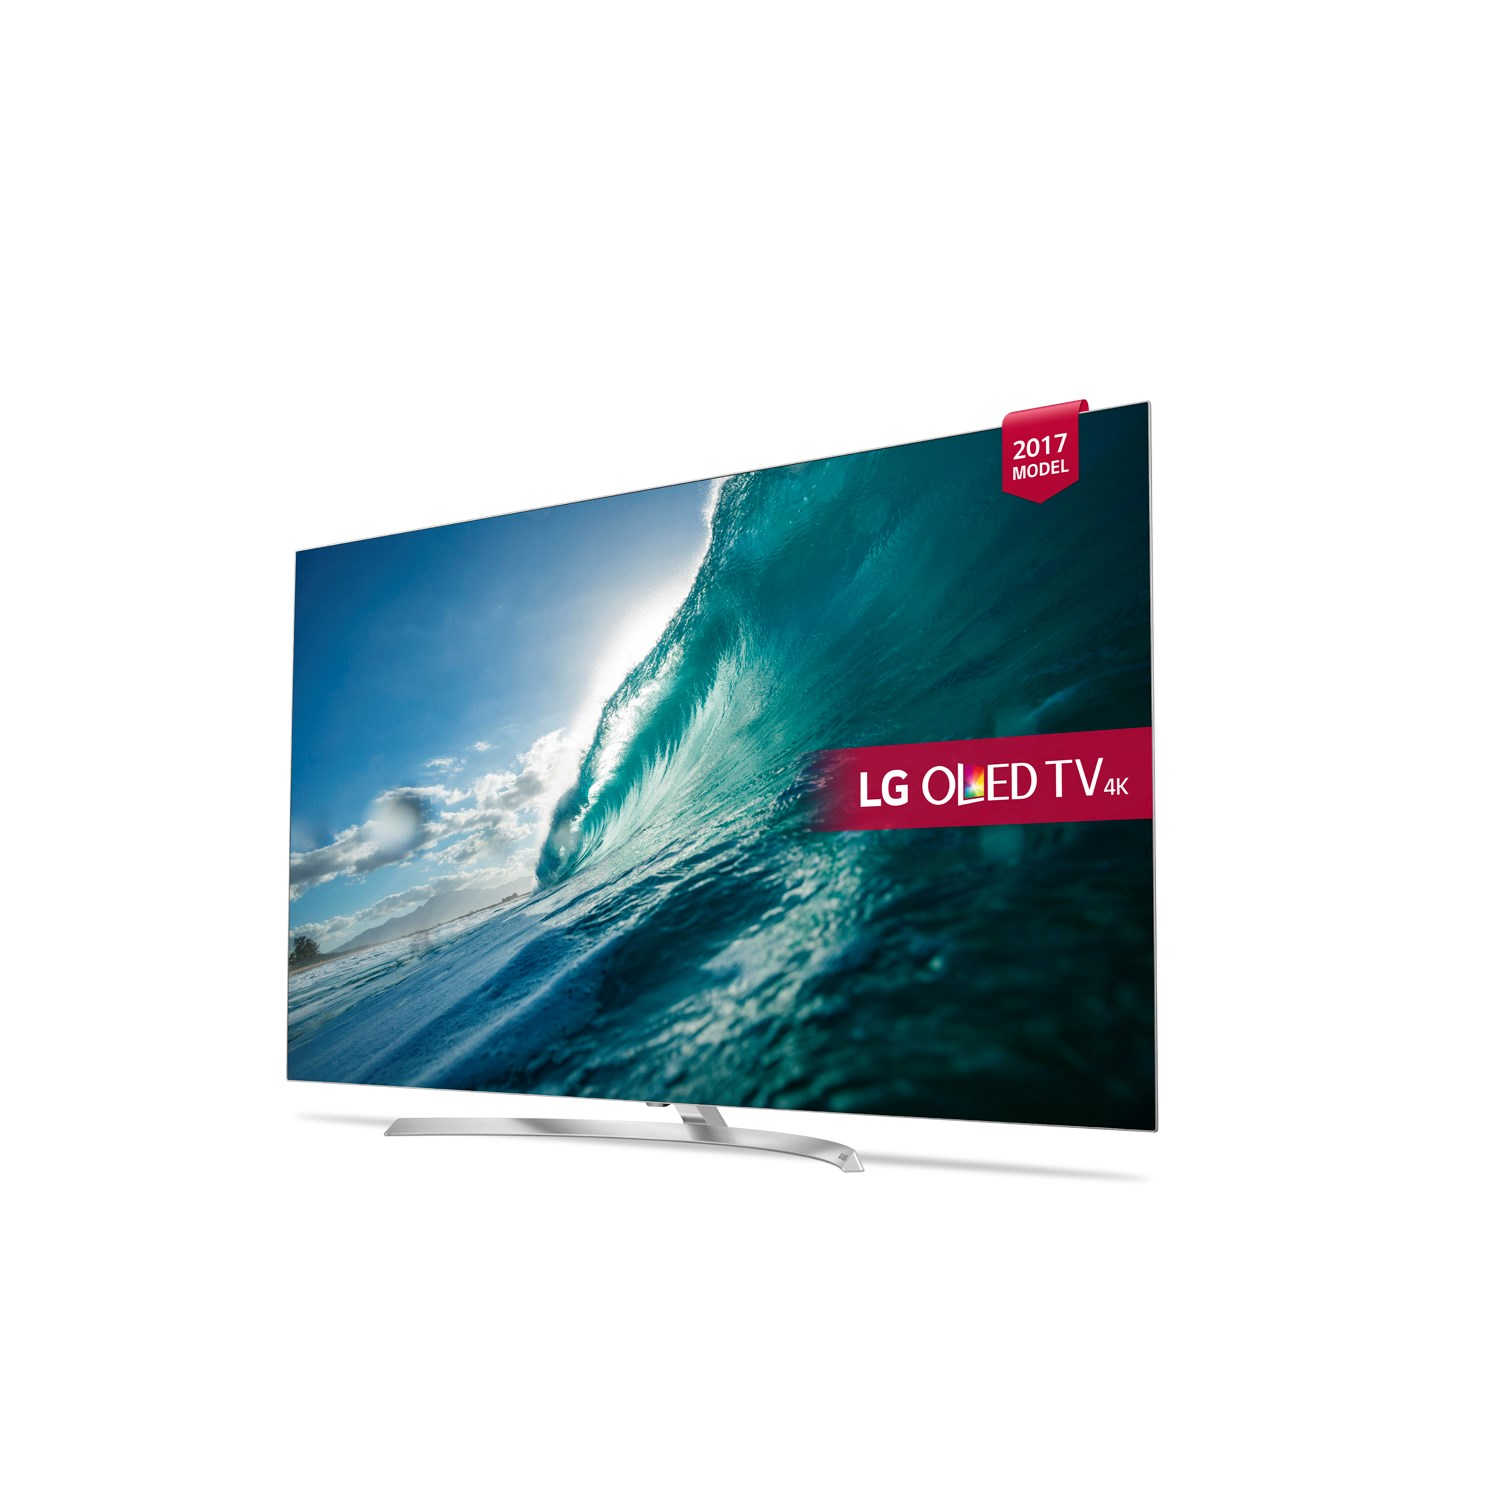 lg oled55b7v 55inch 4k ultra hd hdr smart oled tv in silver with 4x hdmi ports ebay. Black Bedroom Furniture Sets. Home Design Ideas